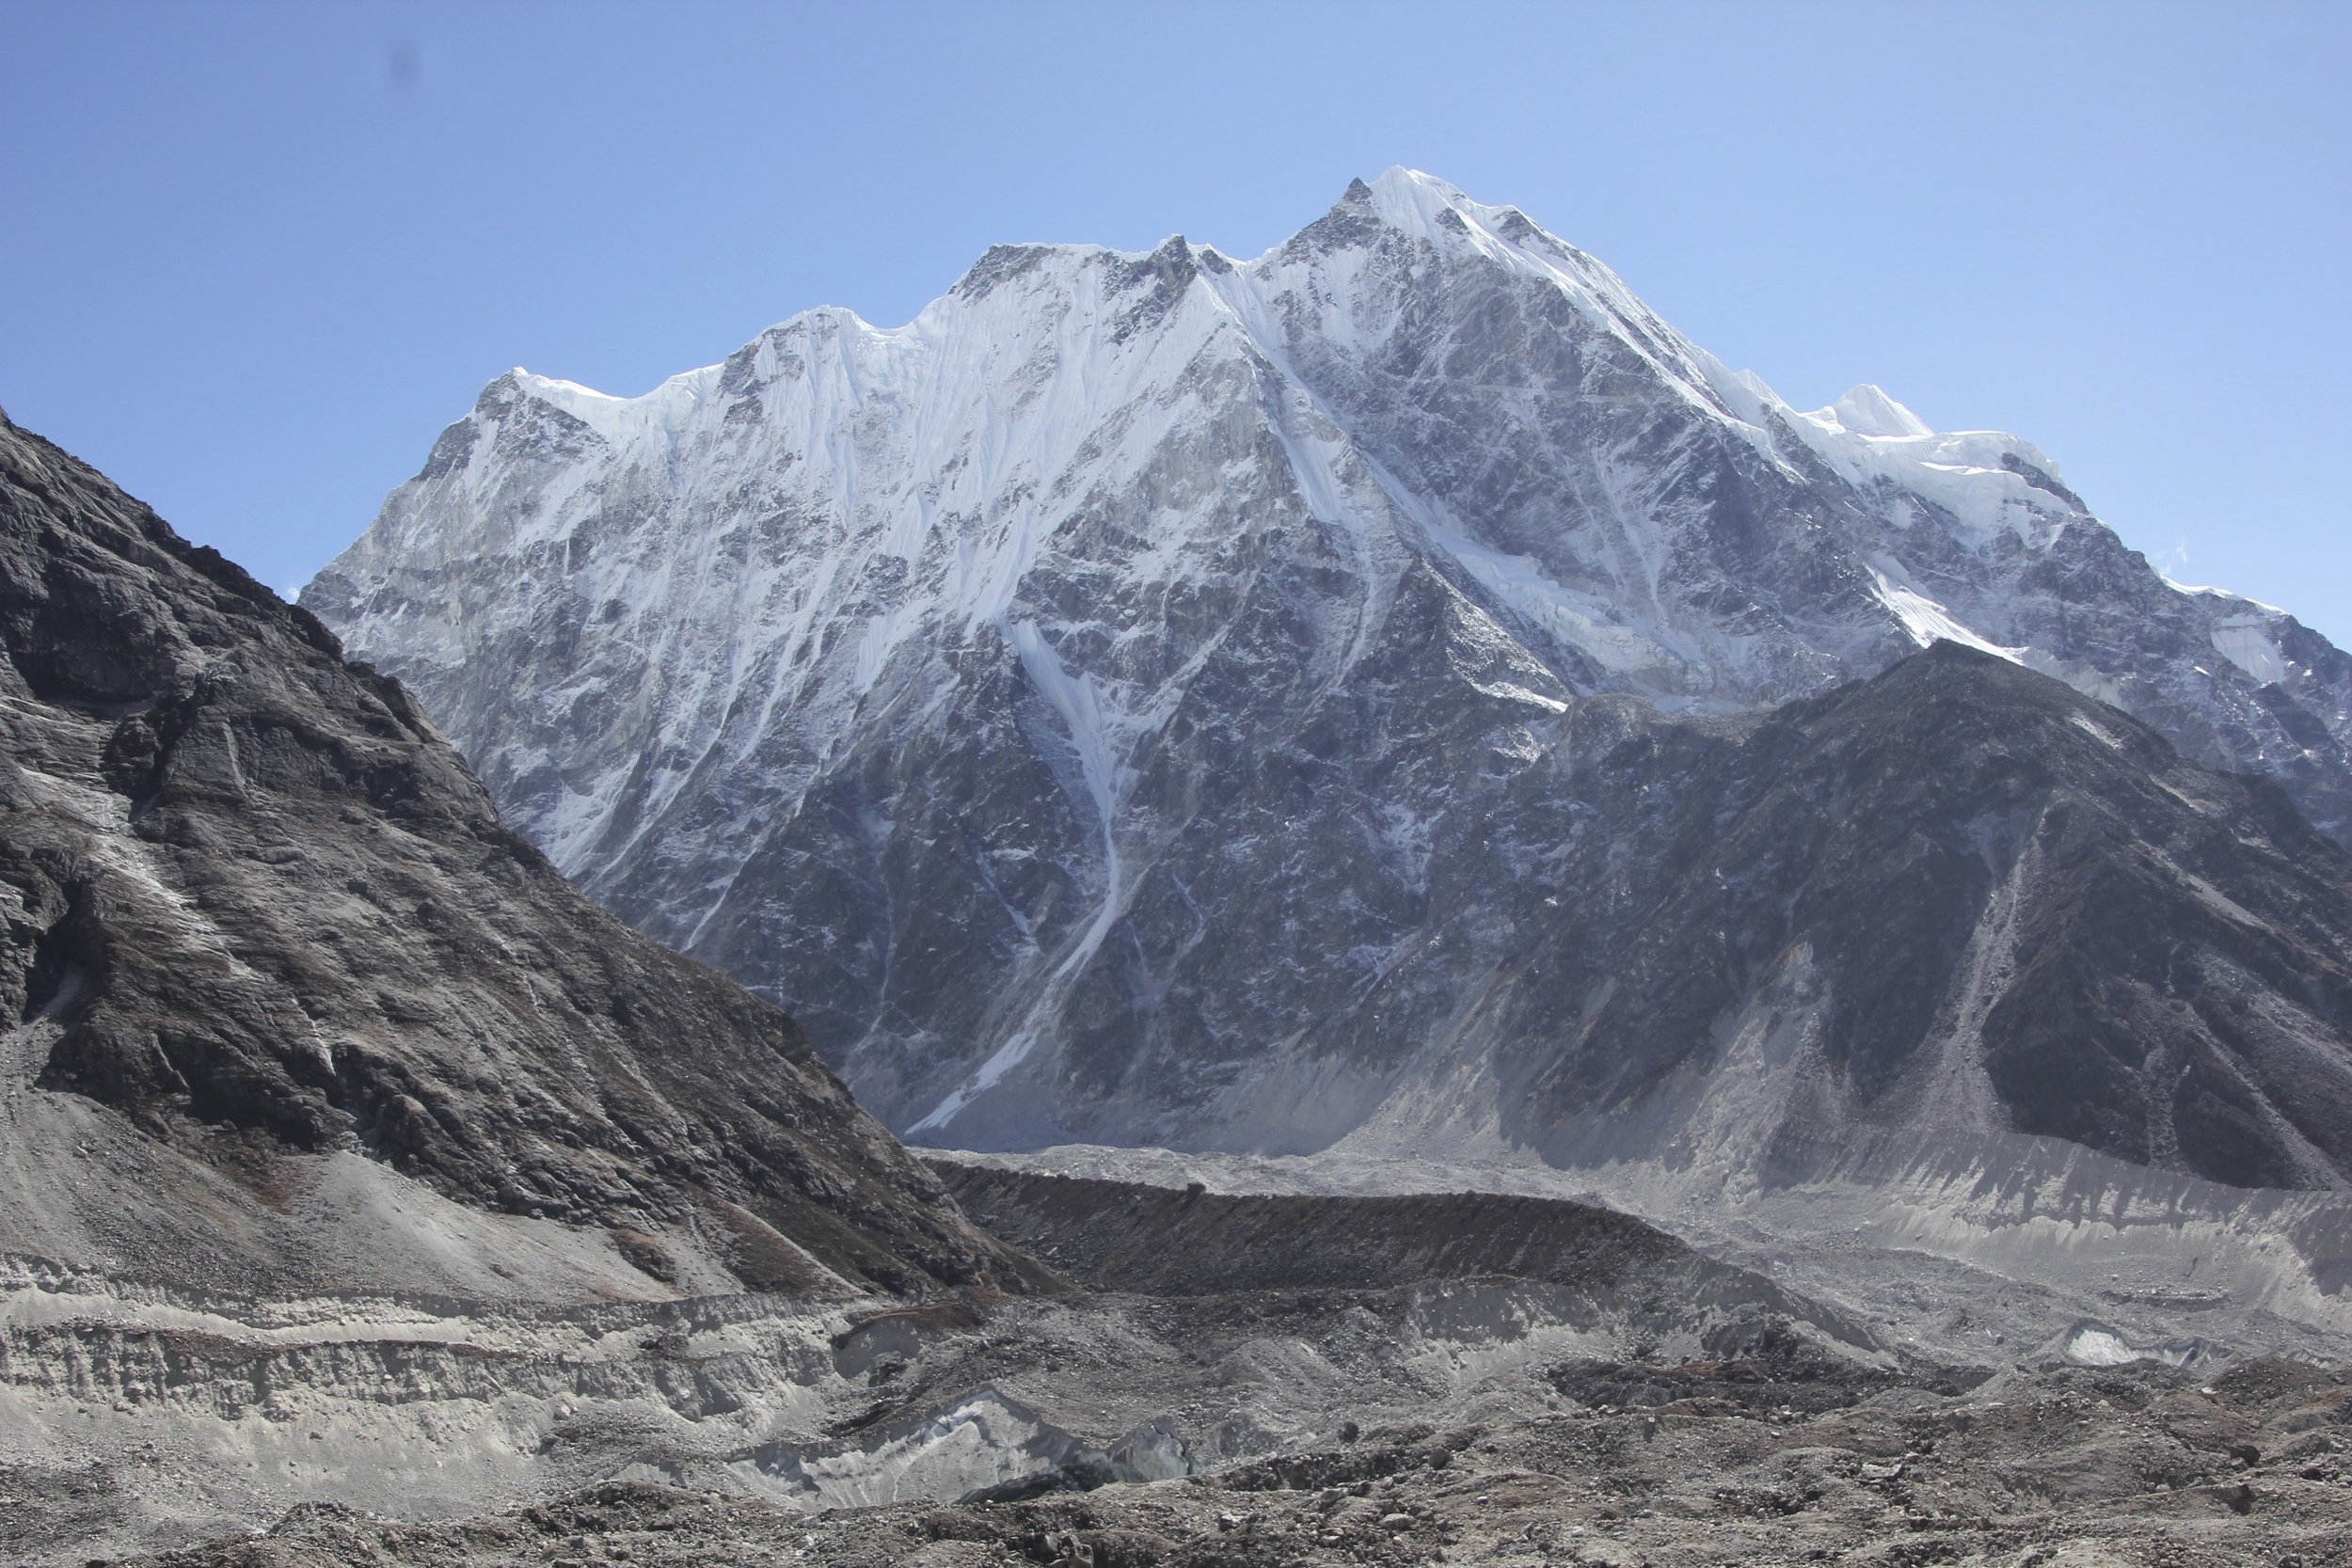 Langshisa Ri north face and the Langtang Glacier.